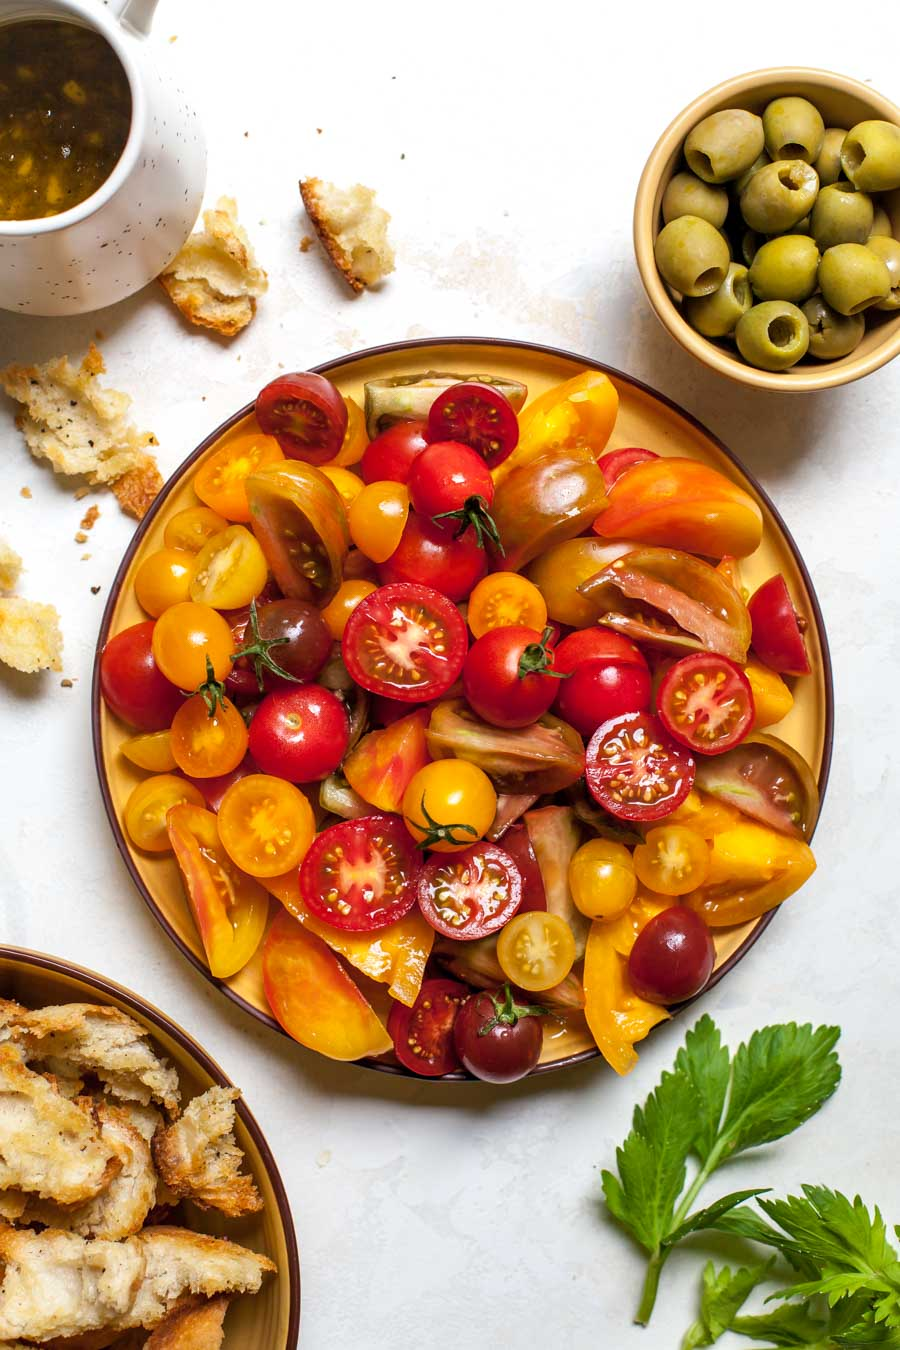 Heirloom and cherry tomatoes